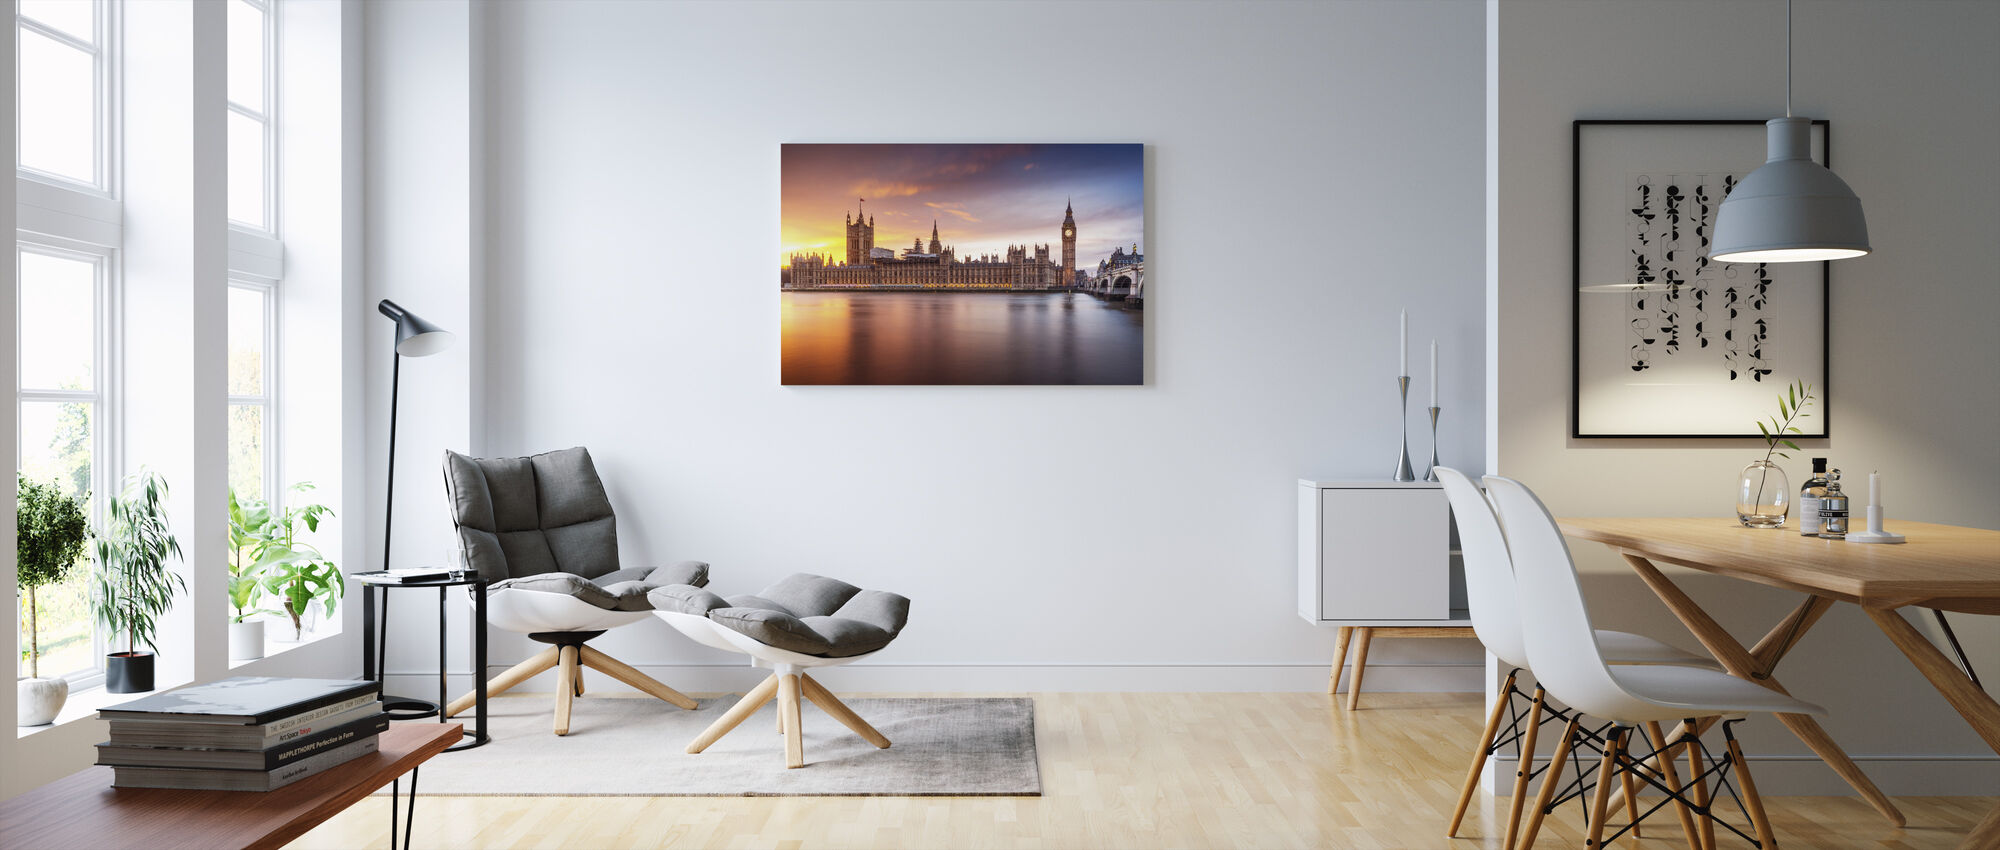 London Palace of Westminster Sunset - Canvas print - Living Room